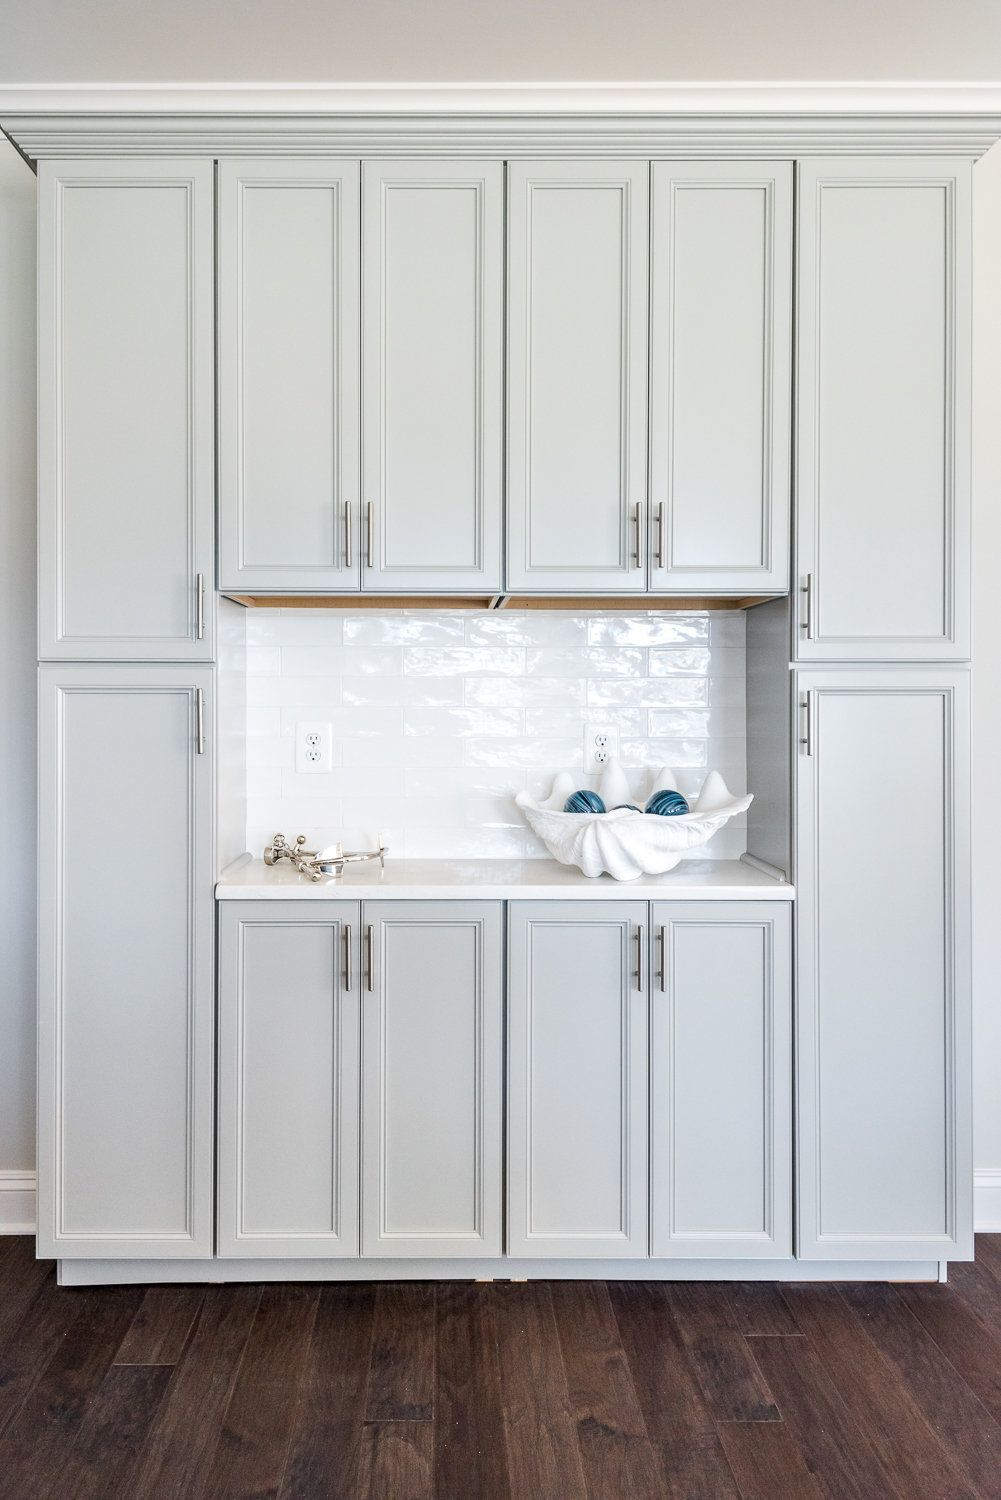 Floor To Ceiling Cabinets Kitchen Cabinets To Ceiling Upper Kitchen Cabinets Floor To Ceiling Cabinets